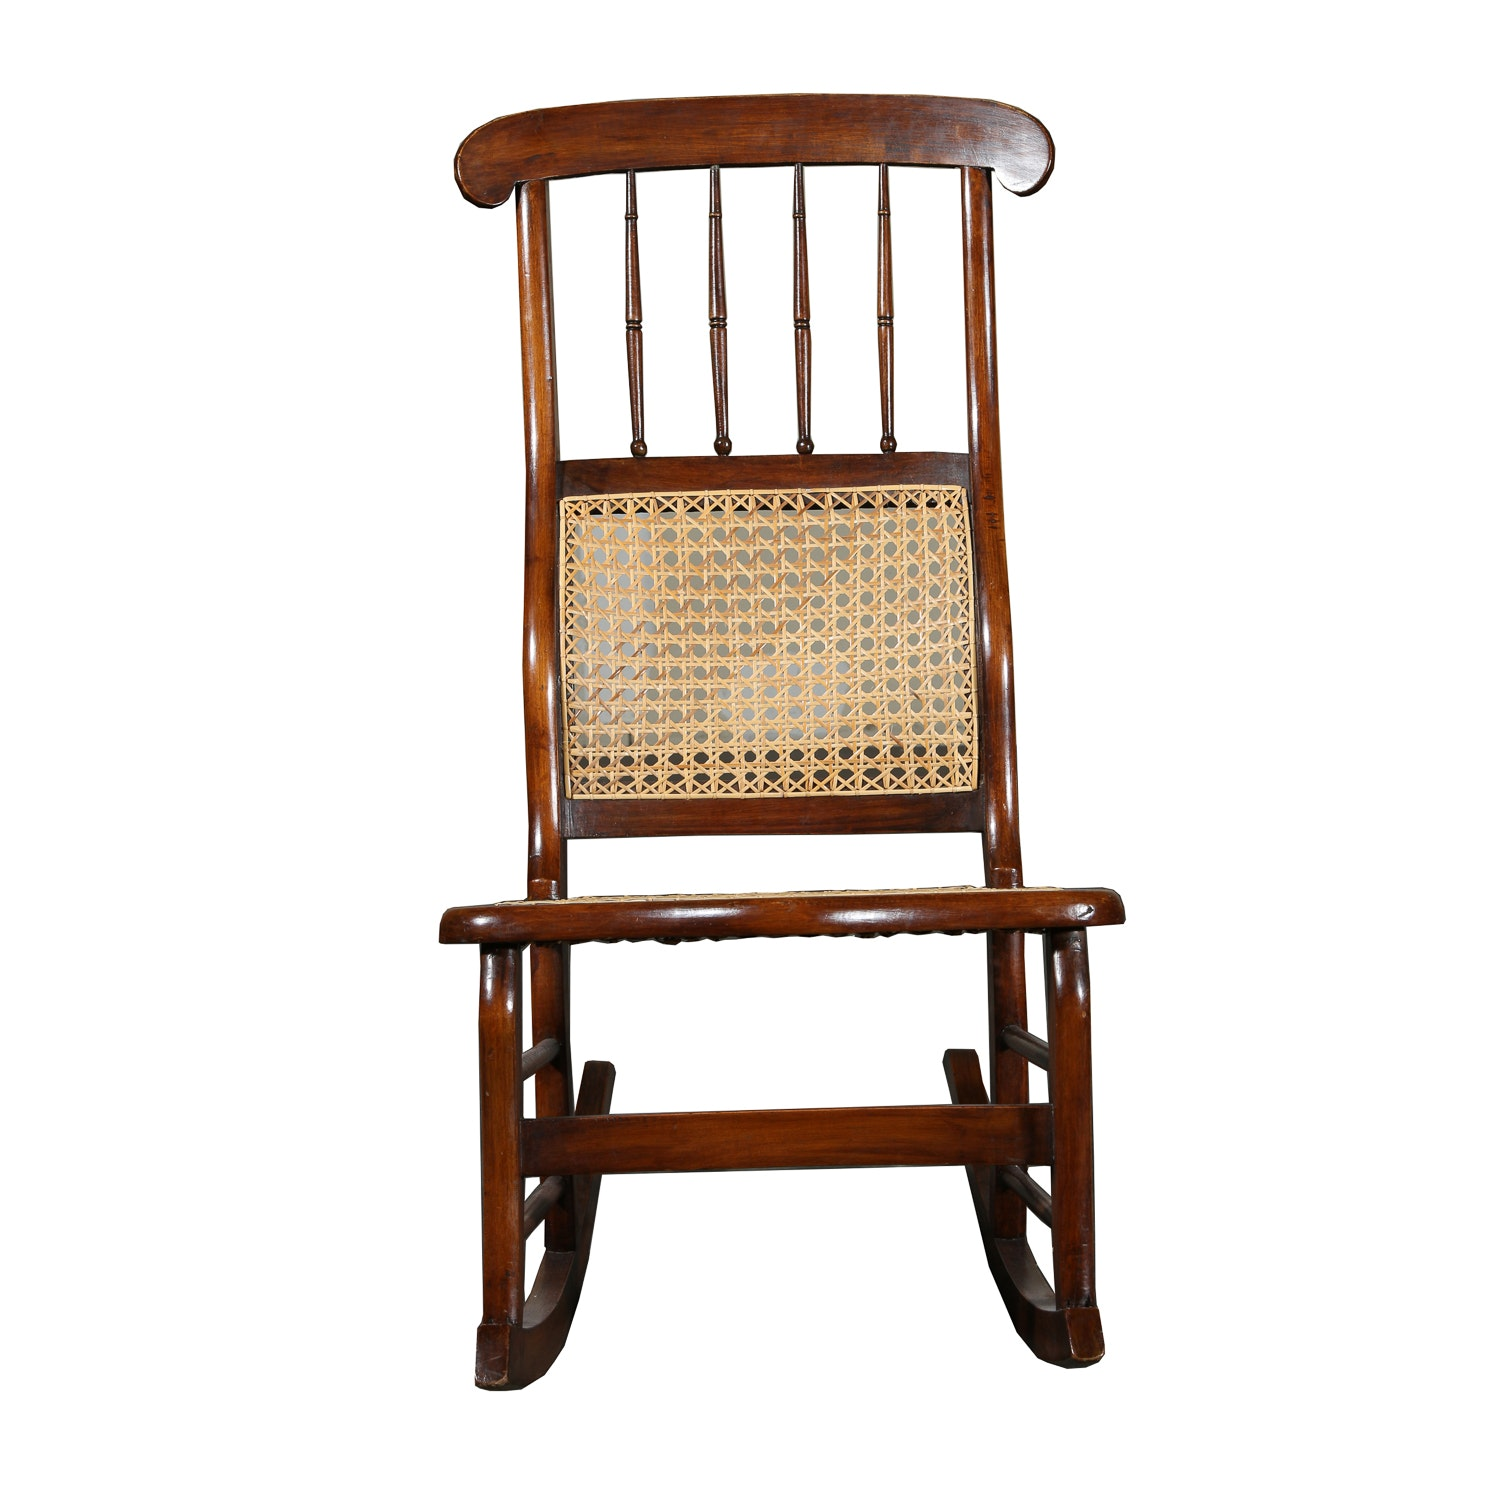 Vintage Rocking Chair with Wicker Seat